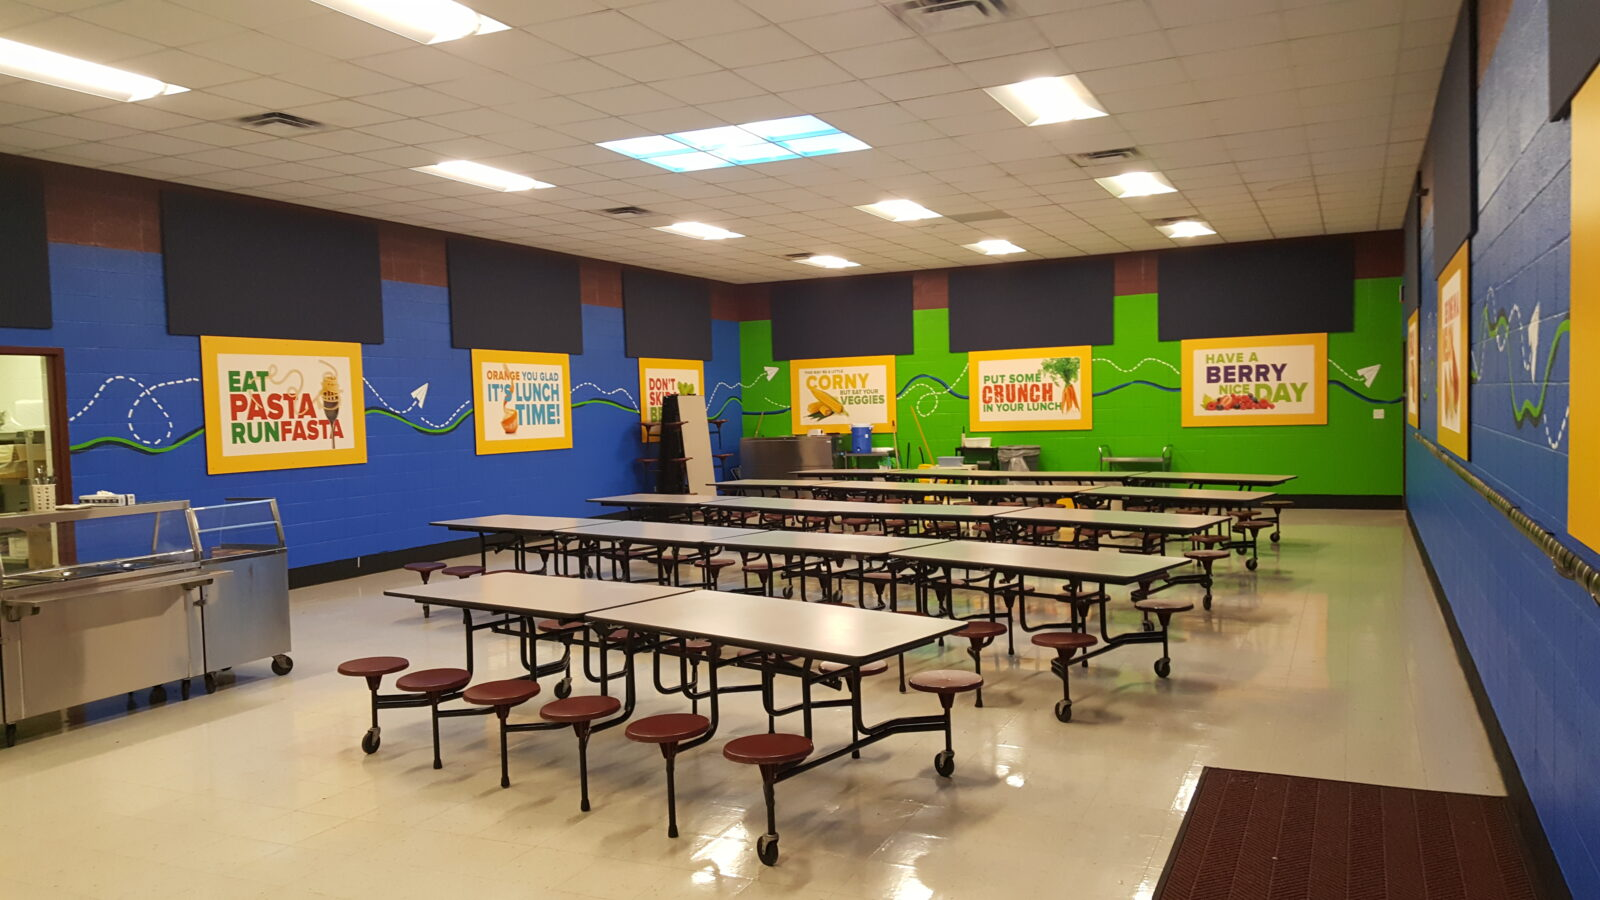 Sound Panels For Walls Soundproofing A Cafeteria